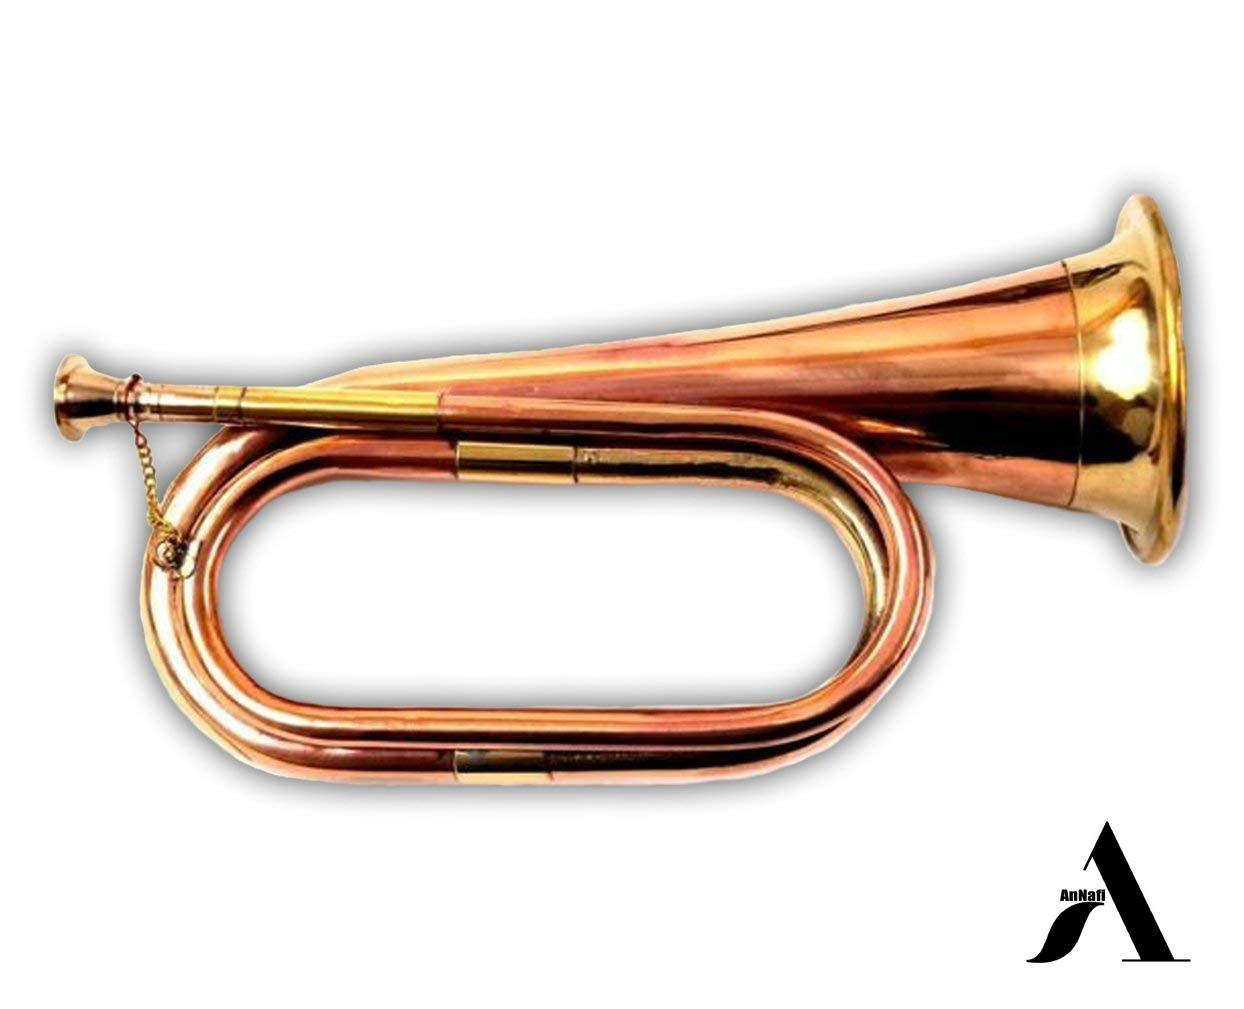 AnNafi Solid Copper & Brass Bugle| US Military Cavalry Horn | Musical Instrument Classic Style |Boy Scout Bugle | Army Military Attack War Command Signal Horn by AnNafi